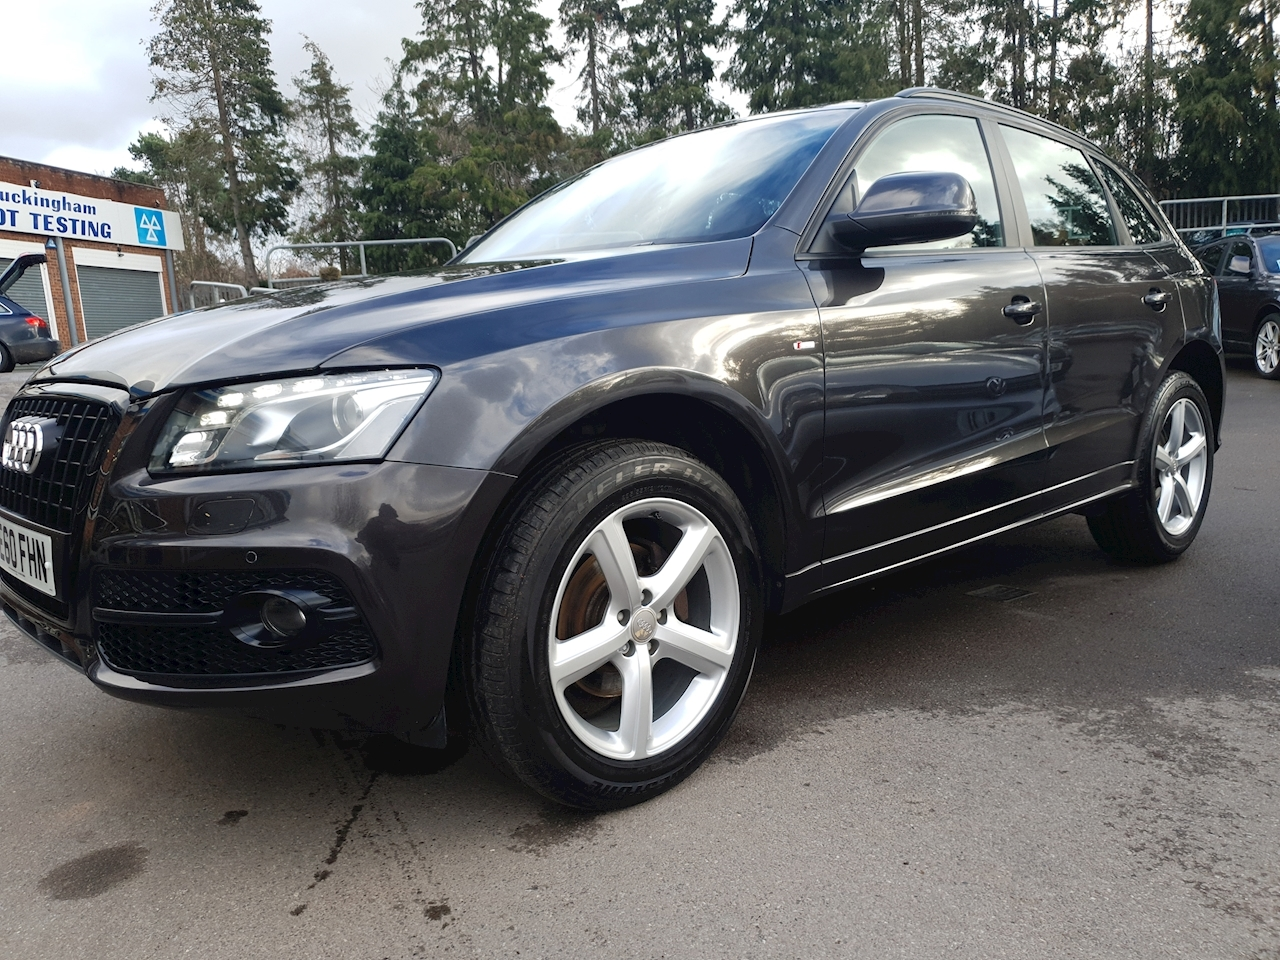 Audi 2.0 TFSI SUV 5dr (£10265 OF FACTORY OPTIONS) Petrol S Tronic quattro (197 g/km, 208 bhp)